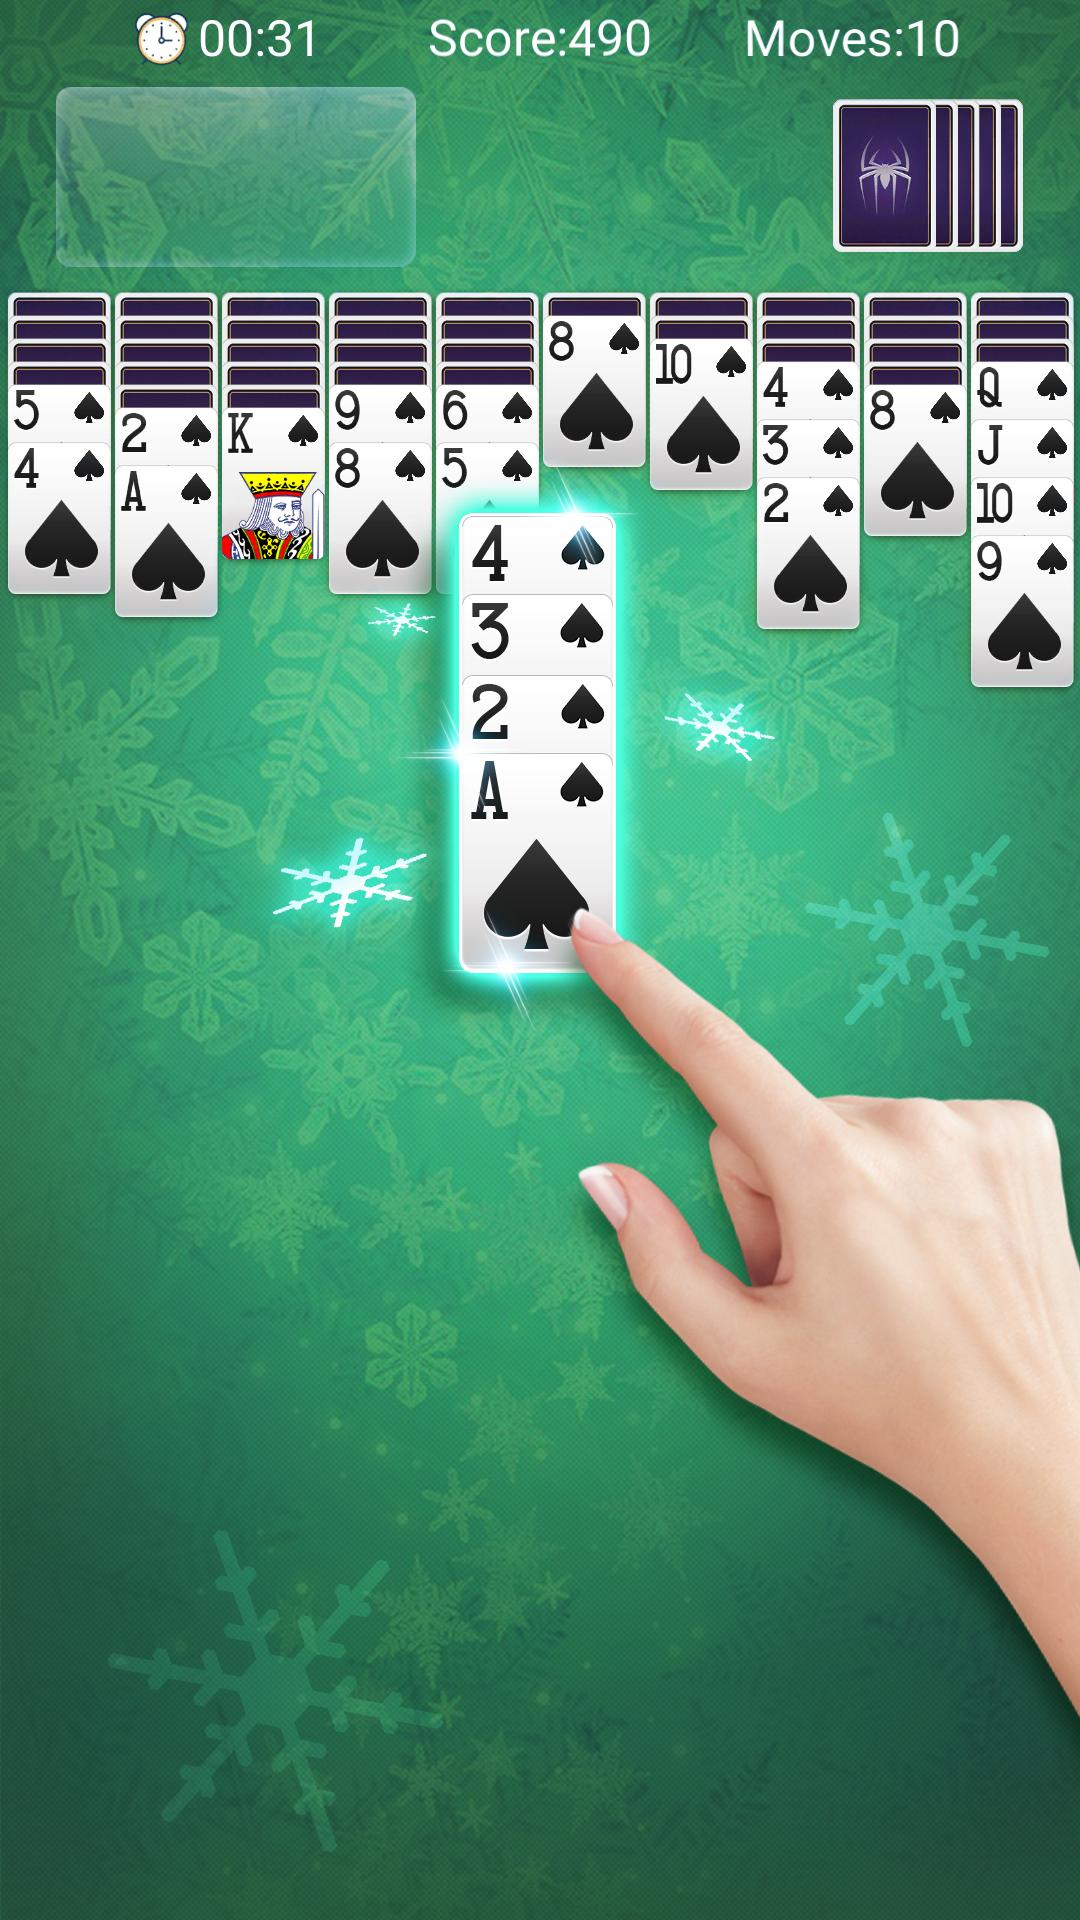 Classic Spider Solitaire-Free Solitaire Card Games 1.8.1 Screenshot 1